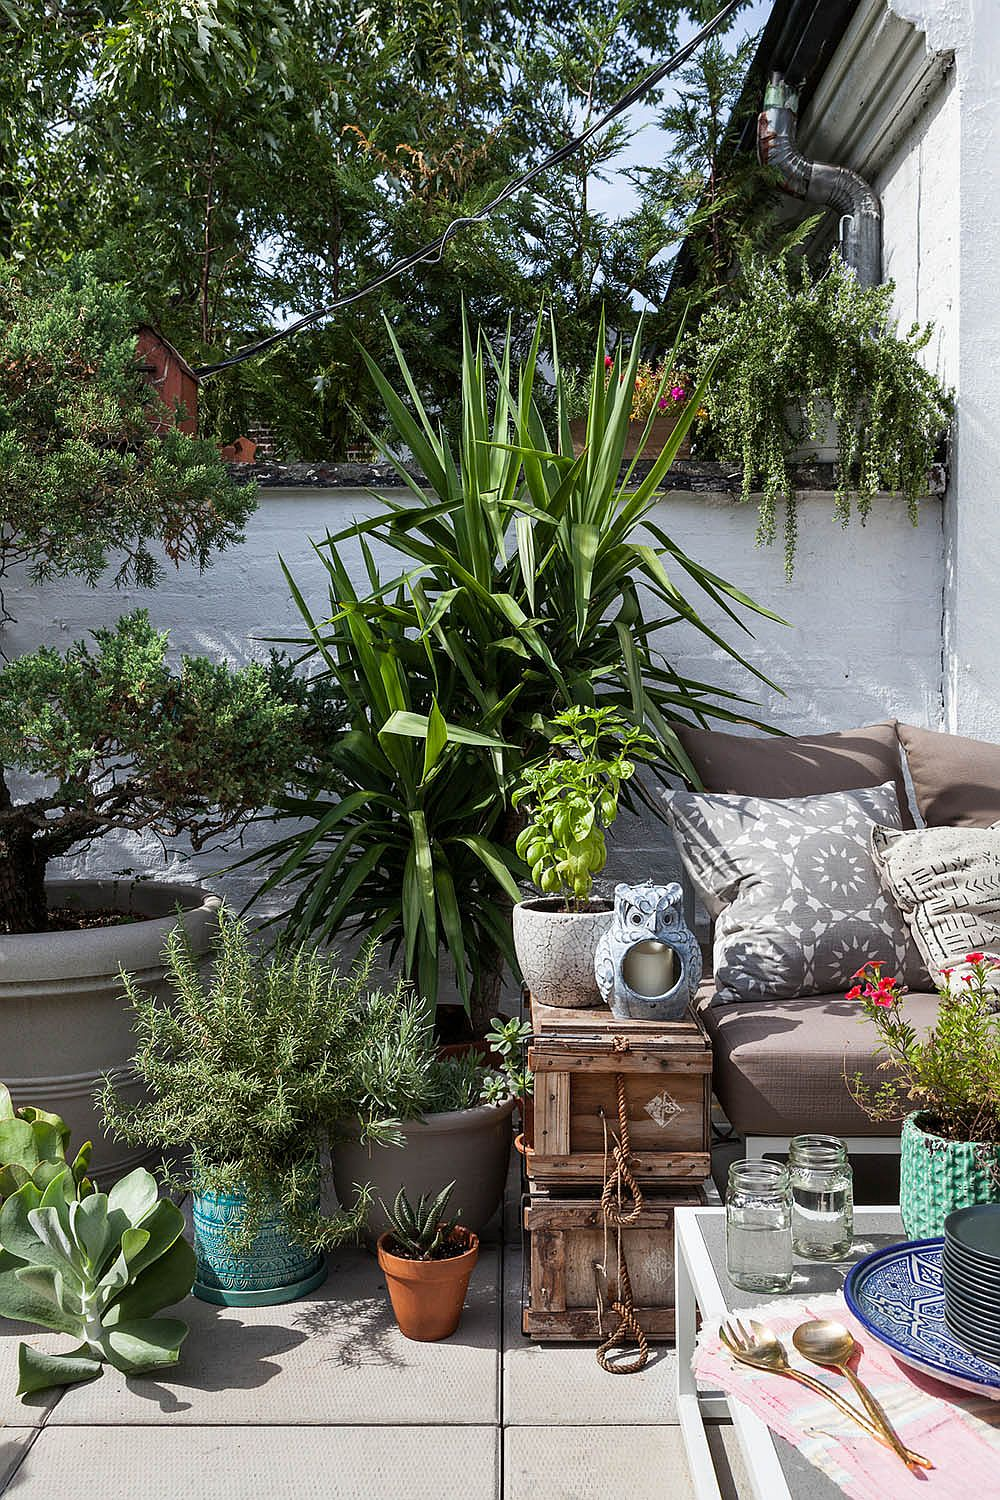 Curated collection of potted plants, reclaimed deor pieces and outdoor decor in the patio